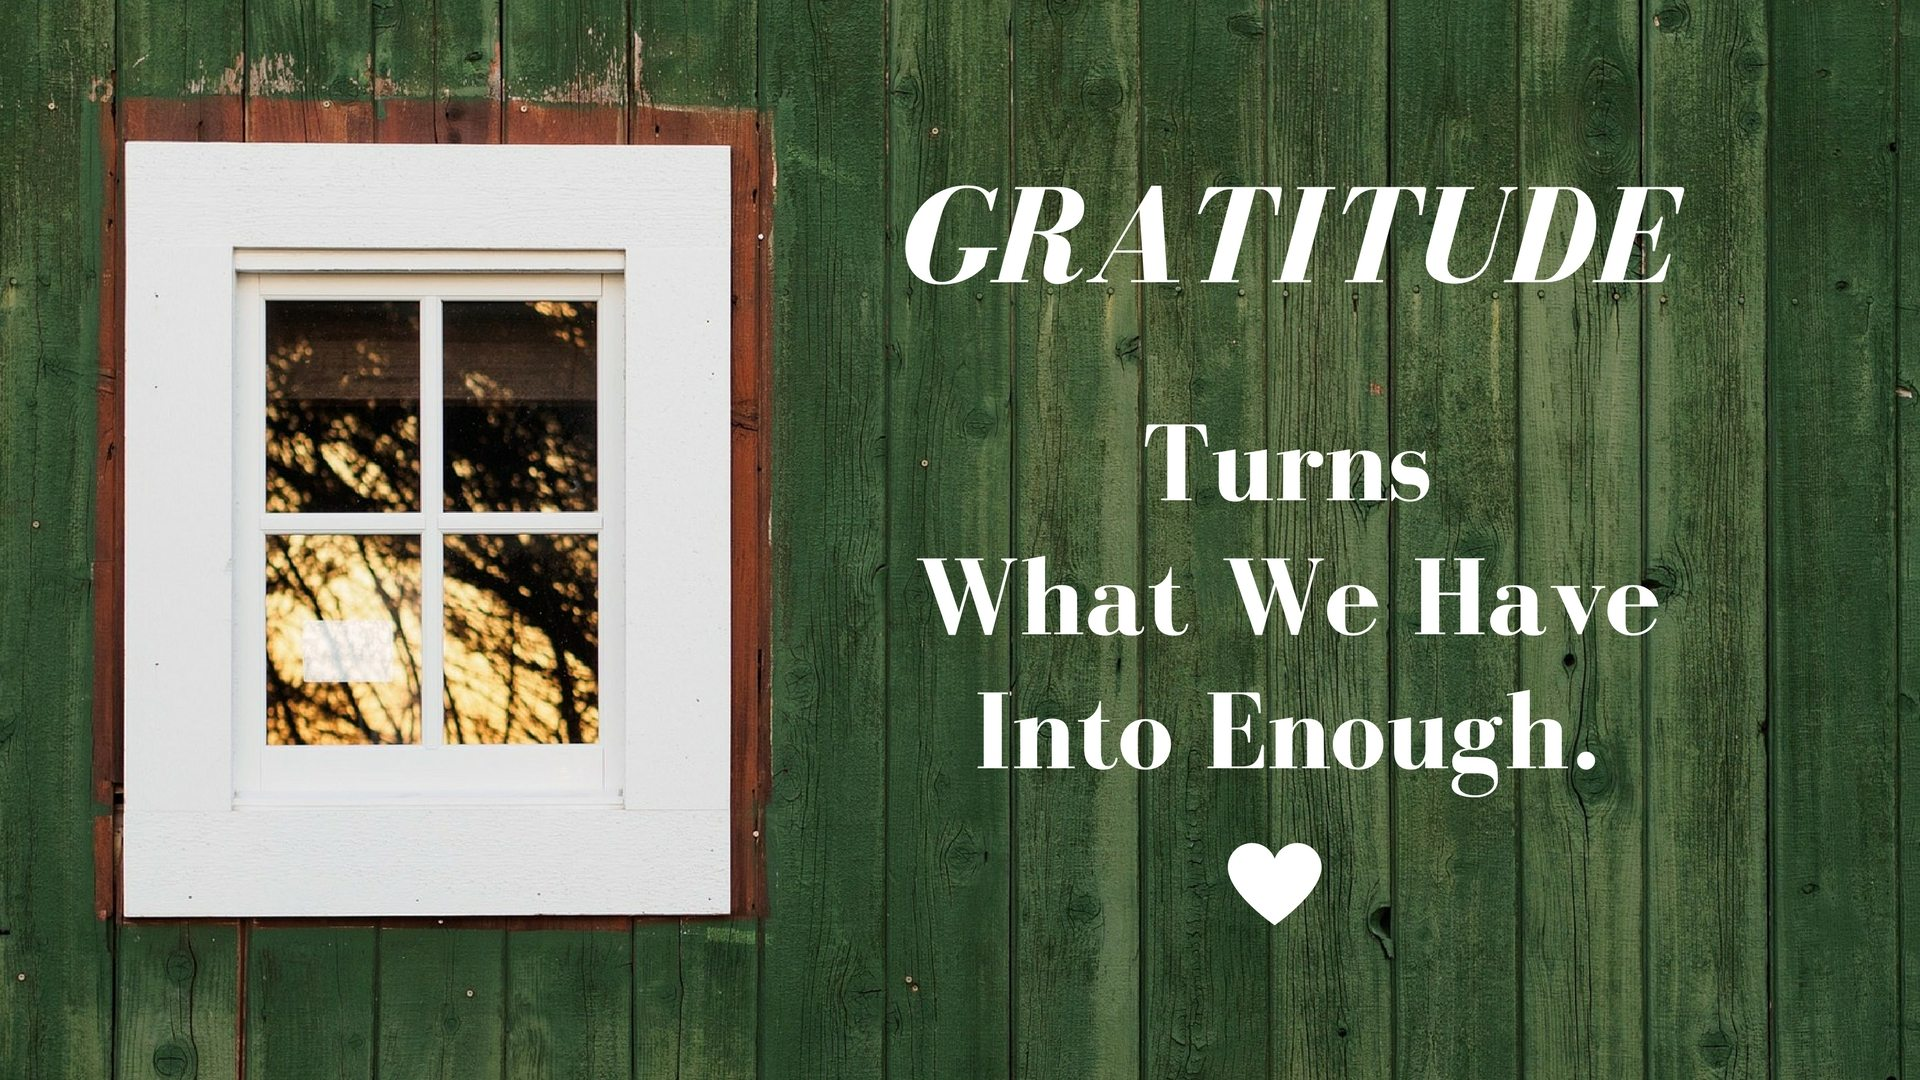 Gratitude - Marriage tidbits - Pixabay - Canva